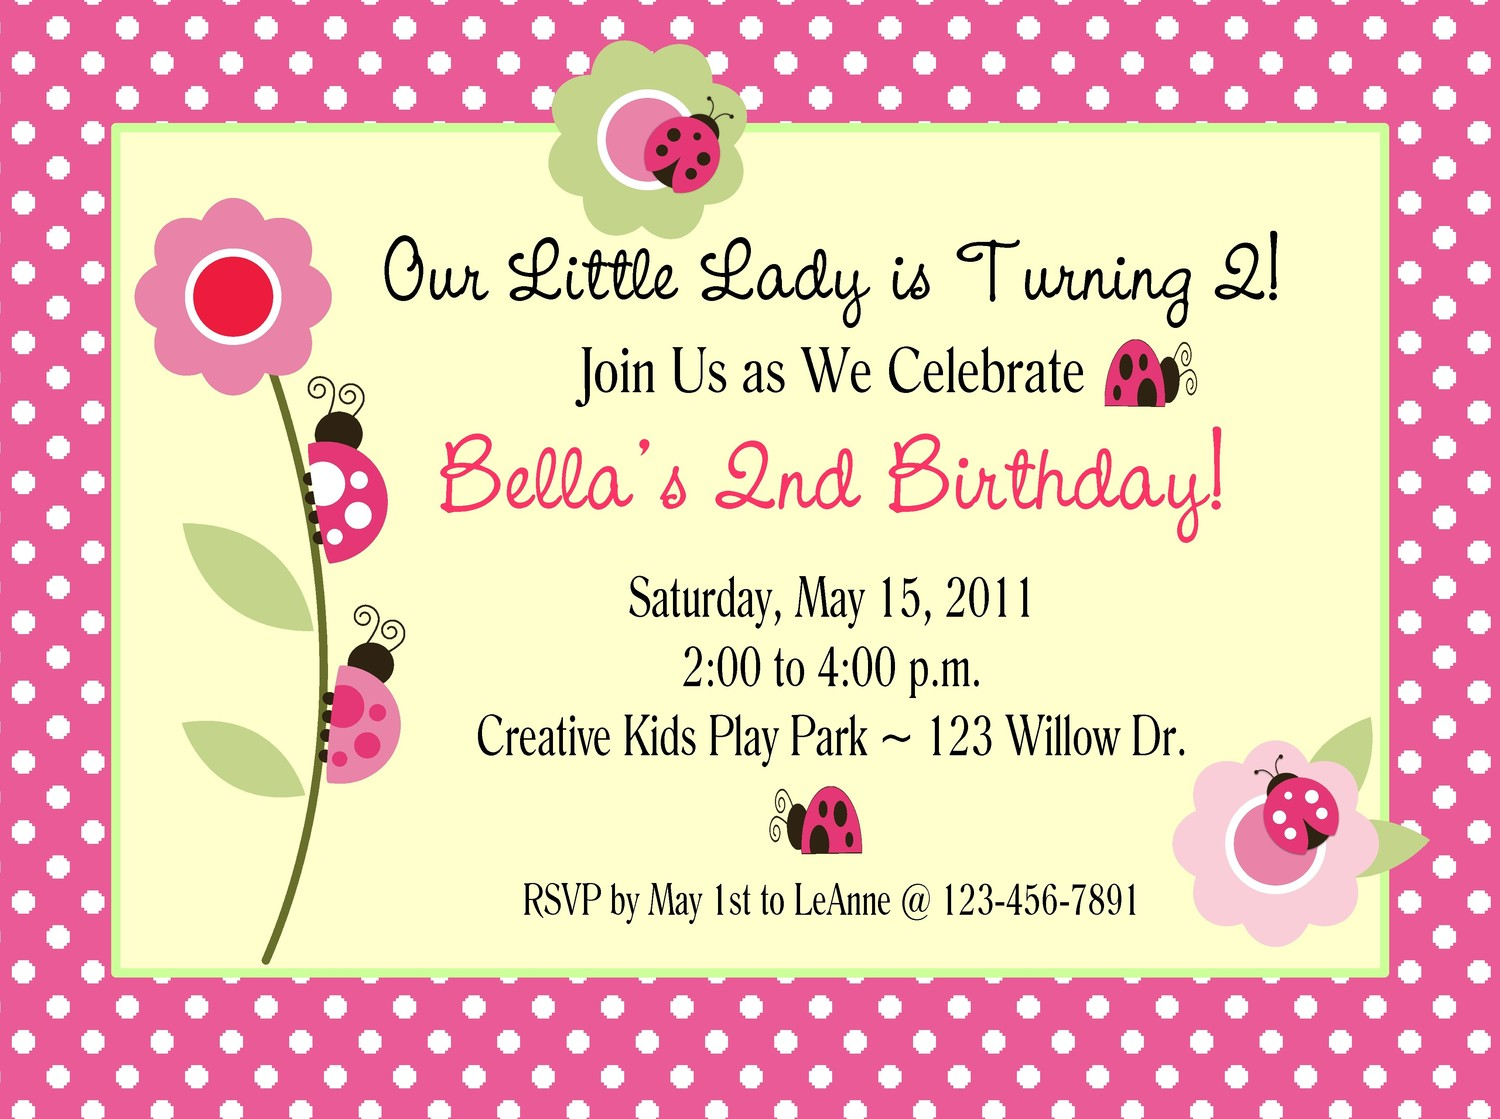 happy birthday party invitation ; Incredible-Birthday-Party-Invitations-Which-Can-Be-Used-As-Birthday-Invitation-Wording